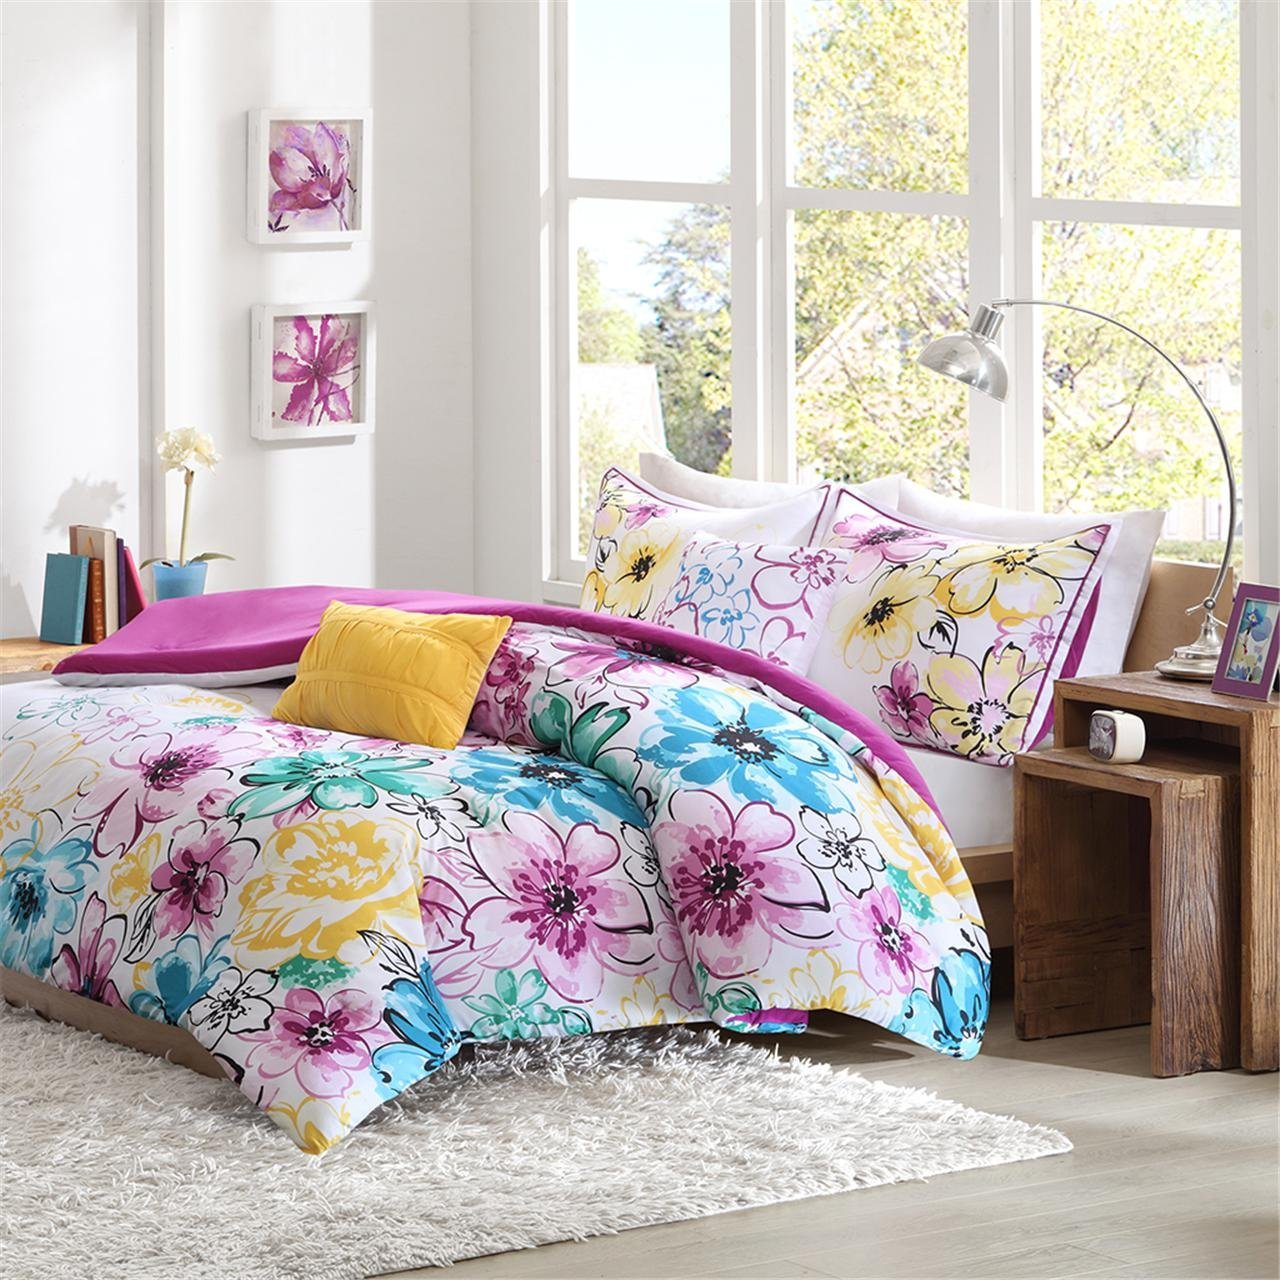 Image of: Cute Floral Bedding Sets